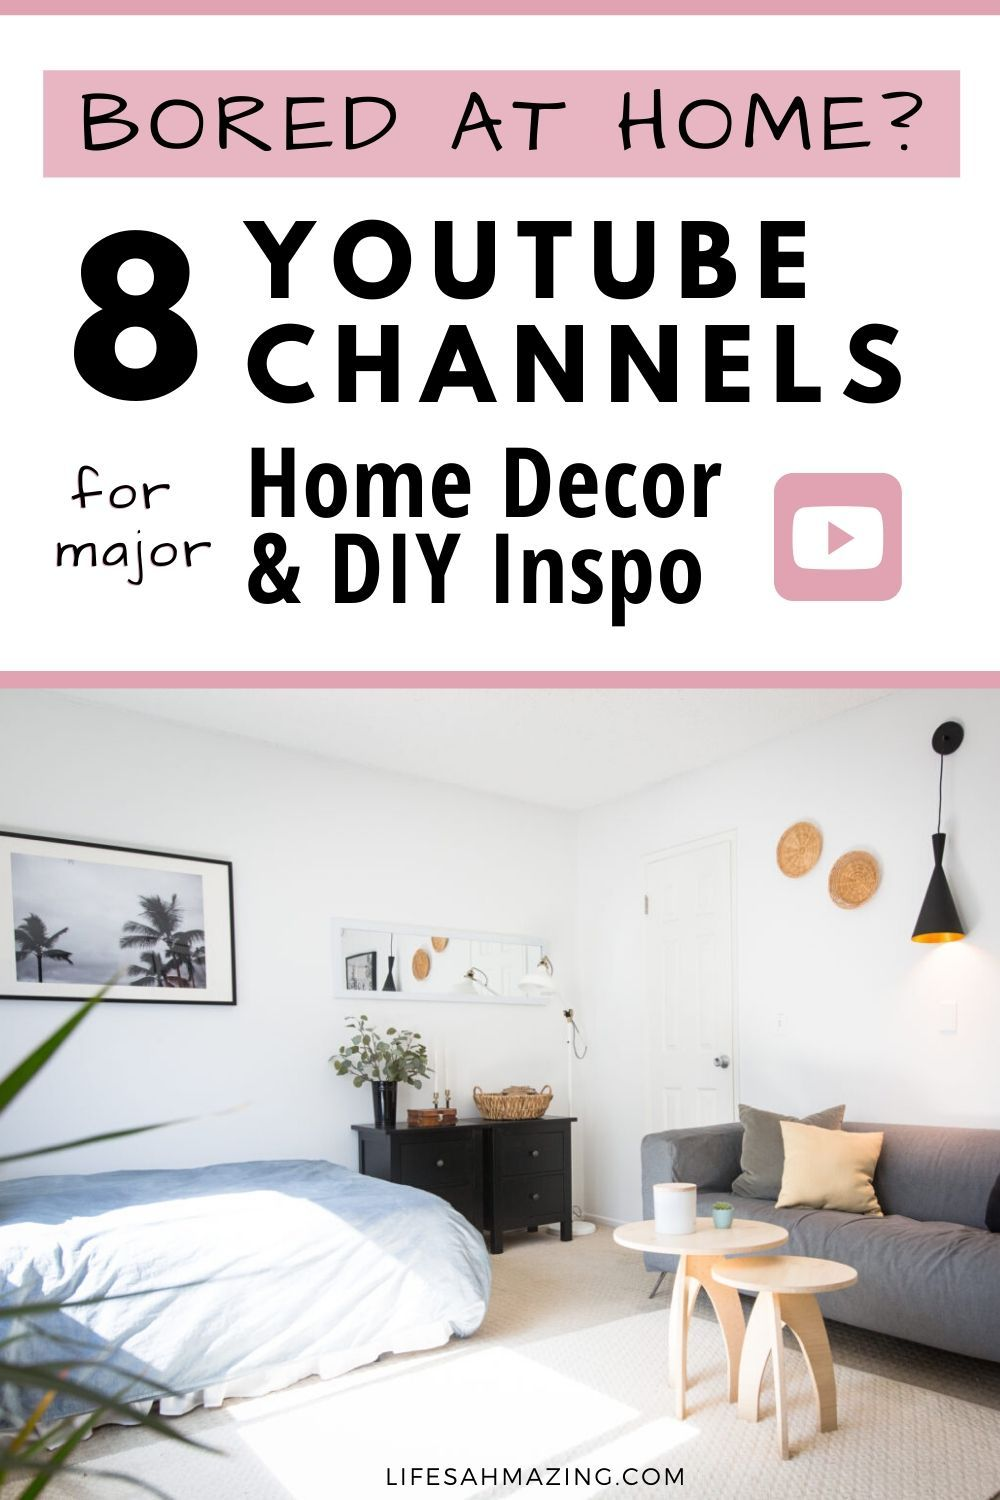 23 DIY and Home Decor YouTube Channels to follow in 23 in 23